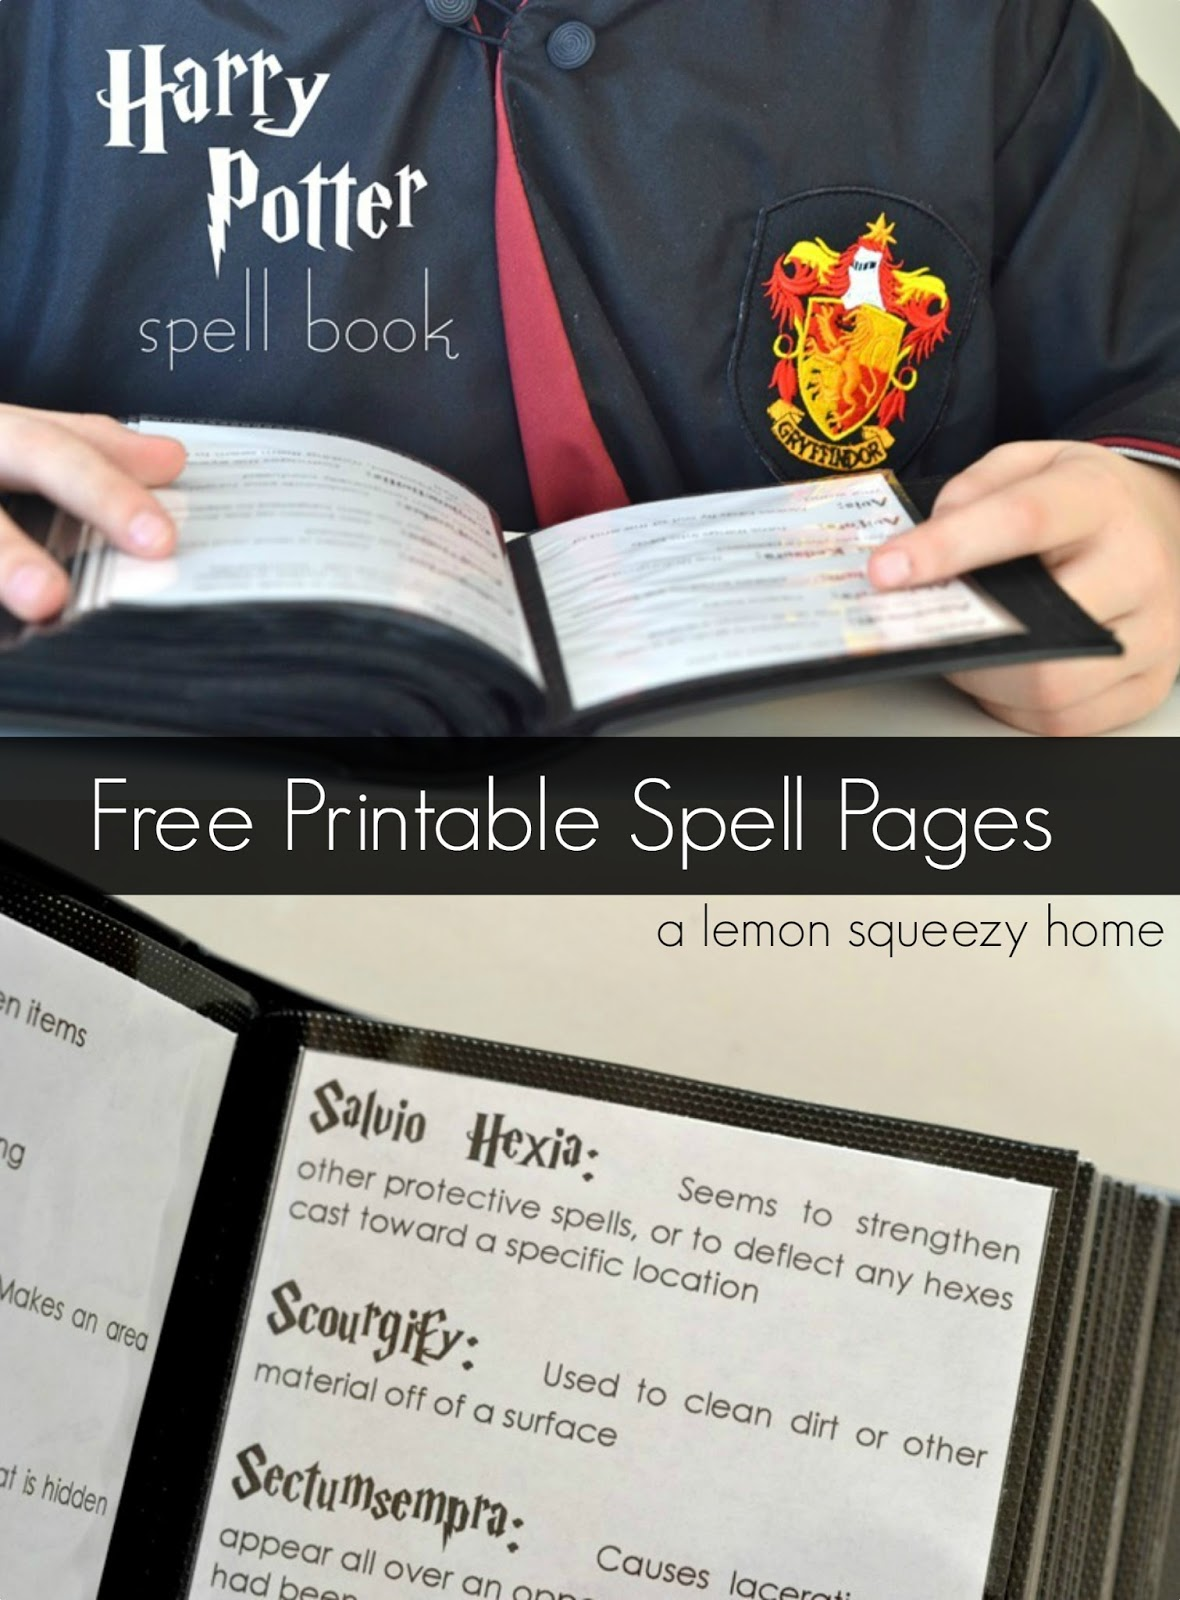 Harry Potter Crafts - Printables, Potions, Butterbeer, Chocolate Frogs, Banners, Bookmarks, Sorting Hat, games and DIY Wands